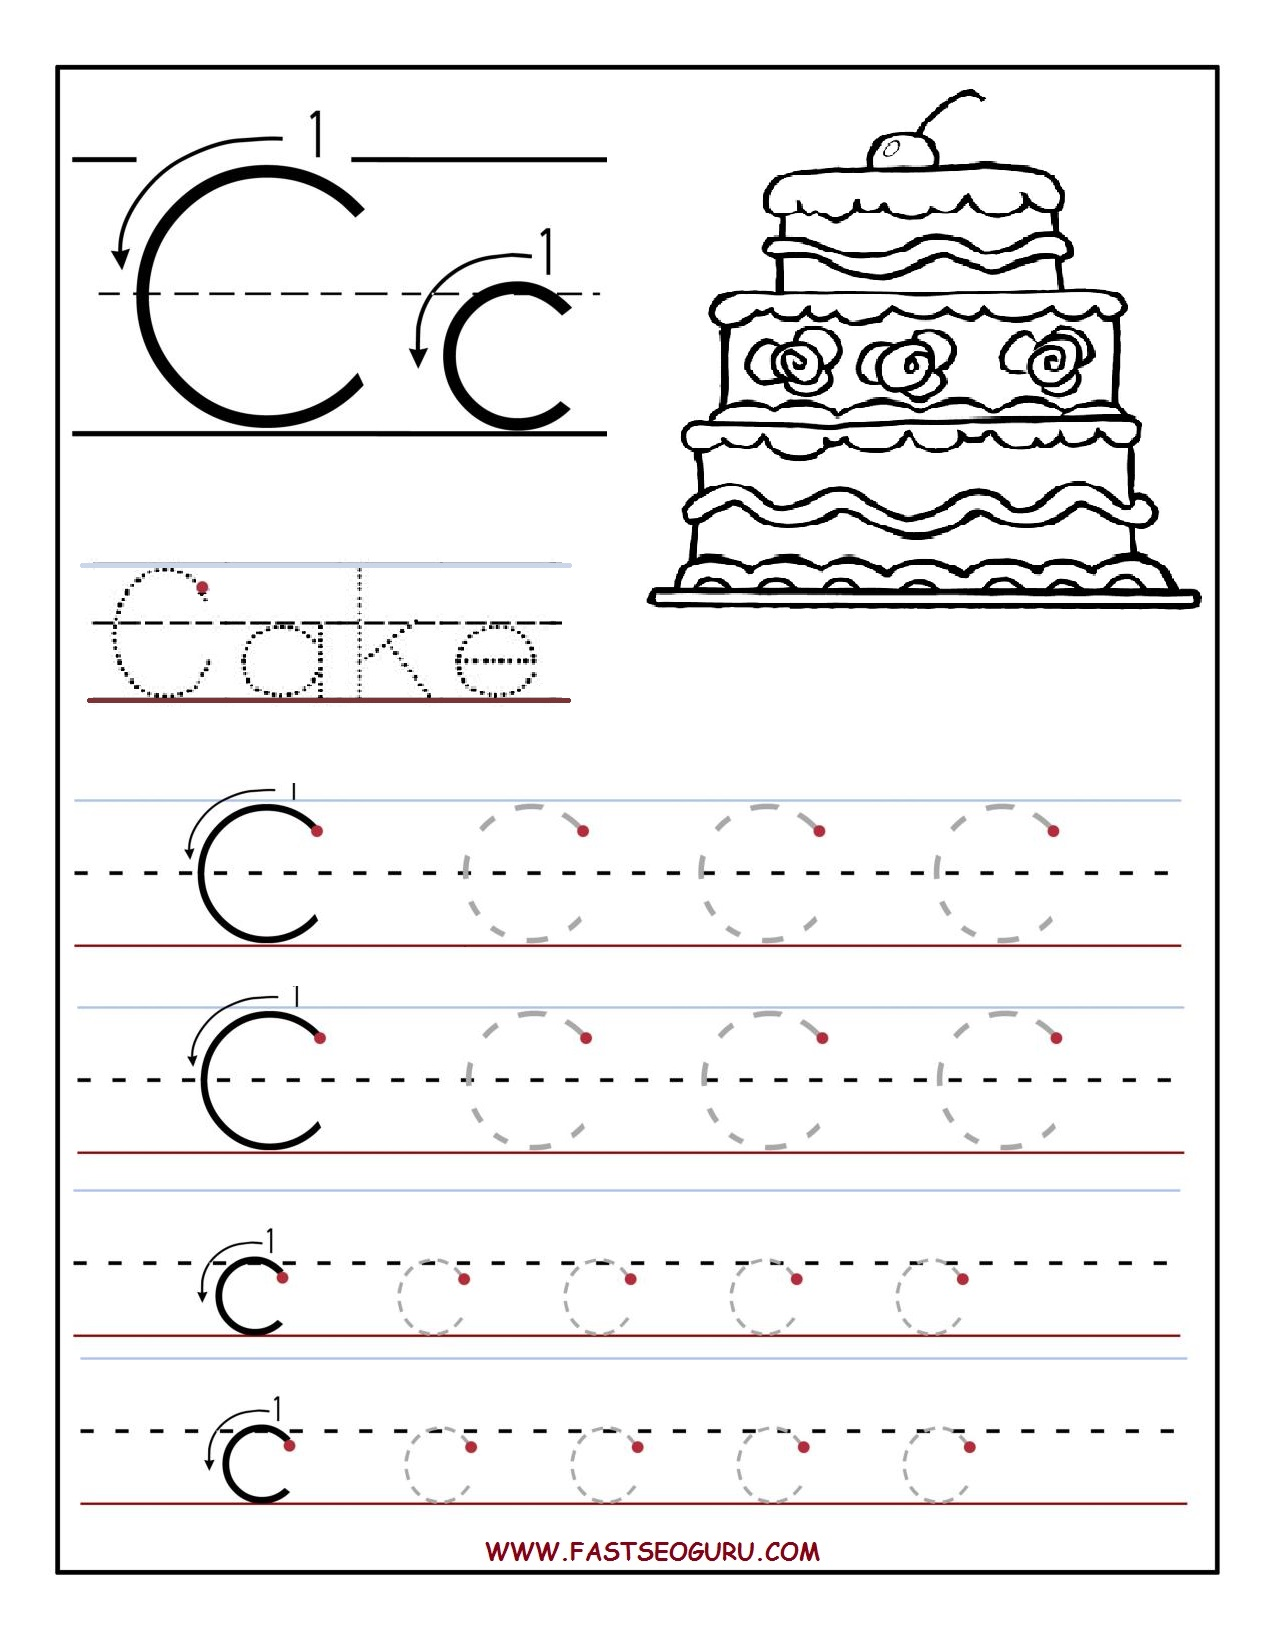 Printables Free Printable Letter Recognition Worksheets free printable letter recognition worksheets vintagegrn mysticfudge